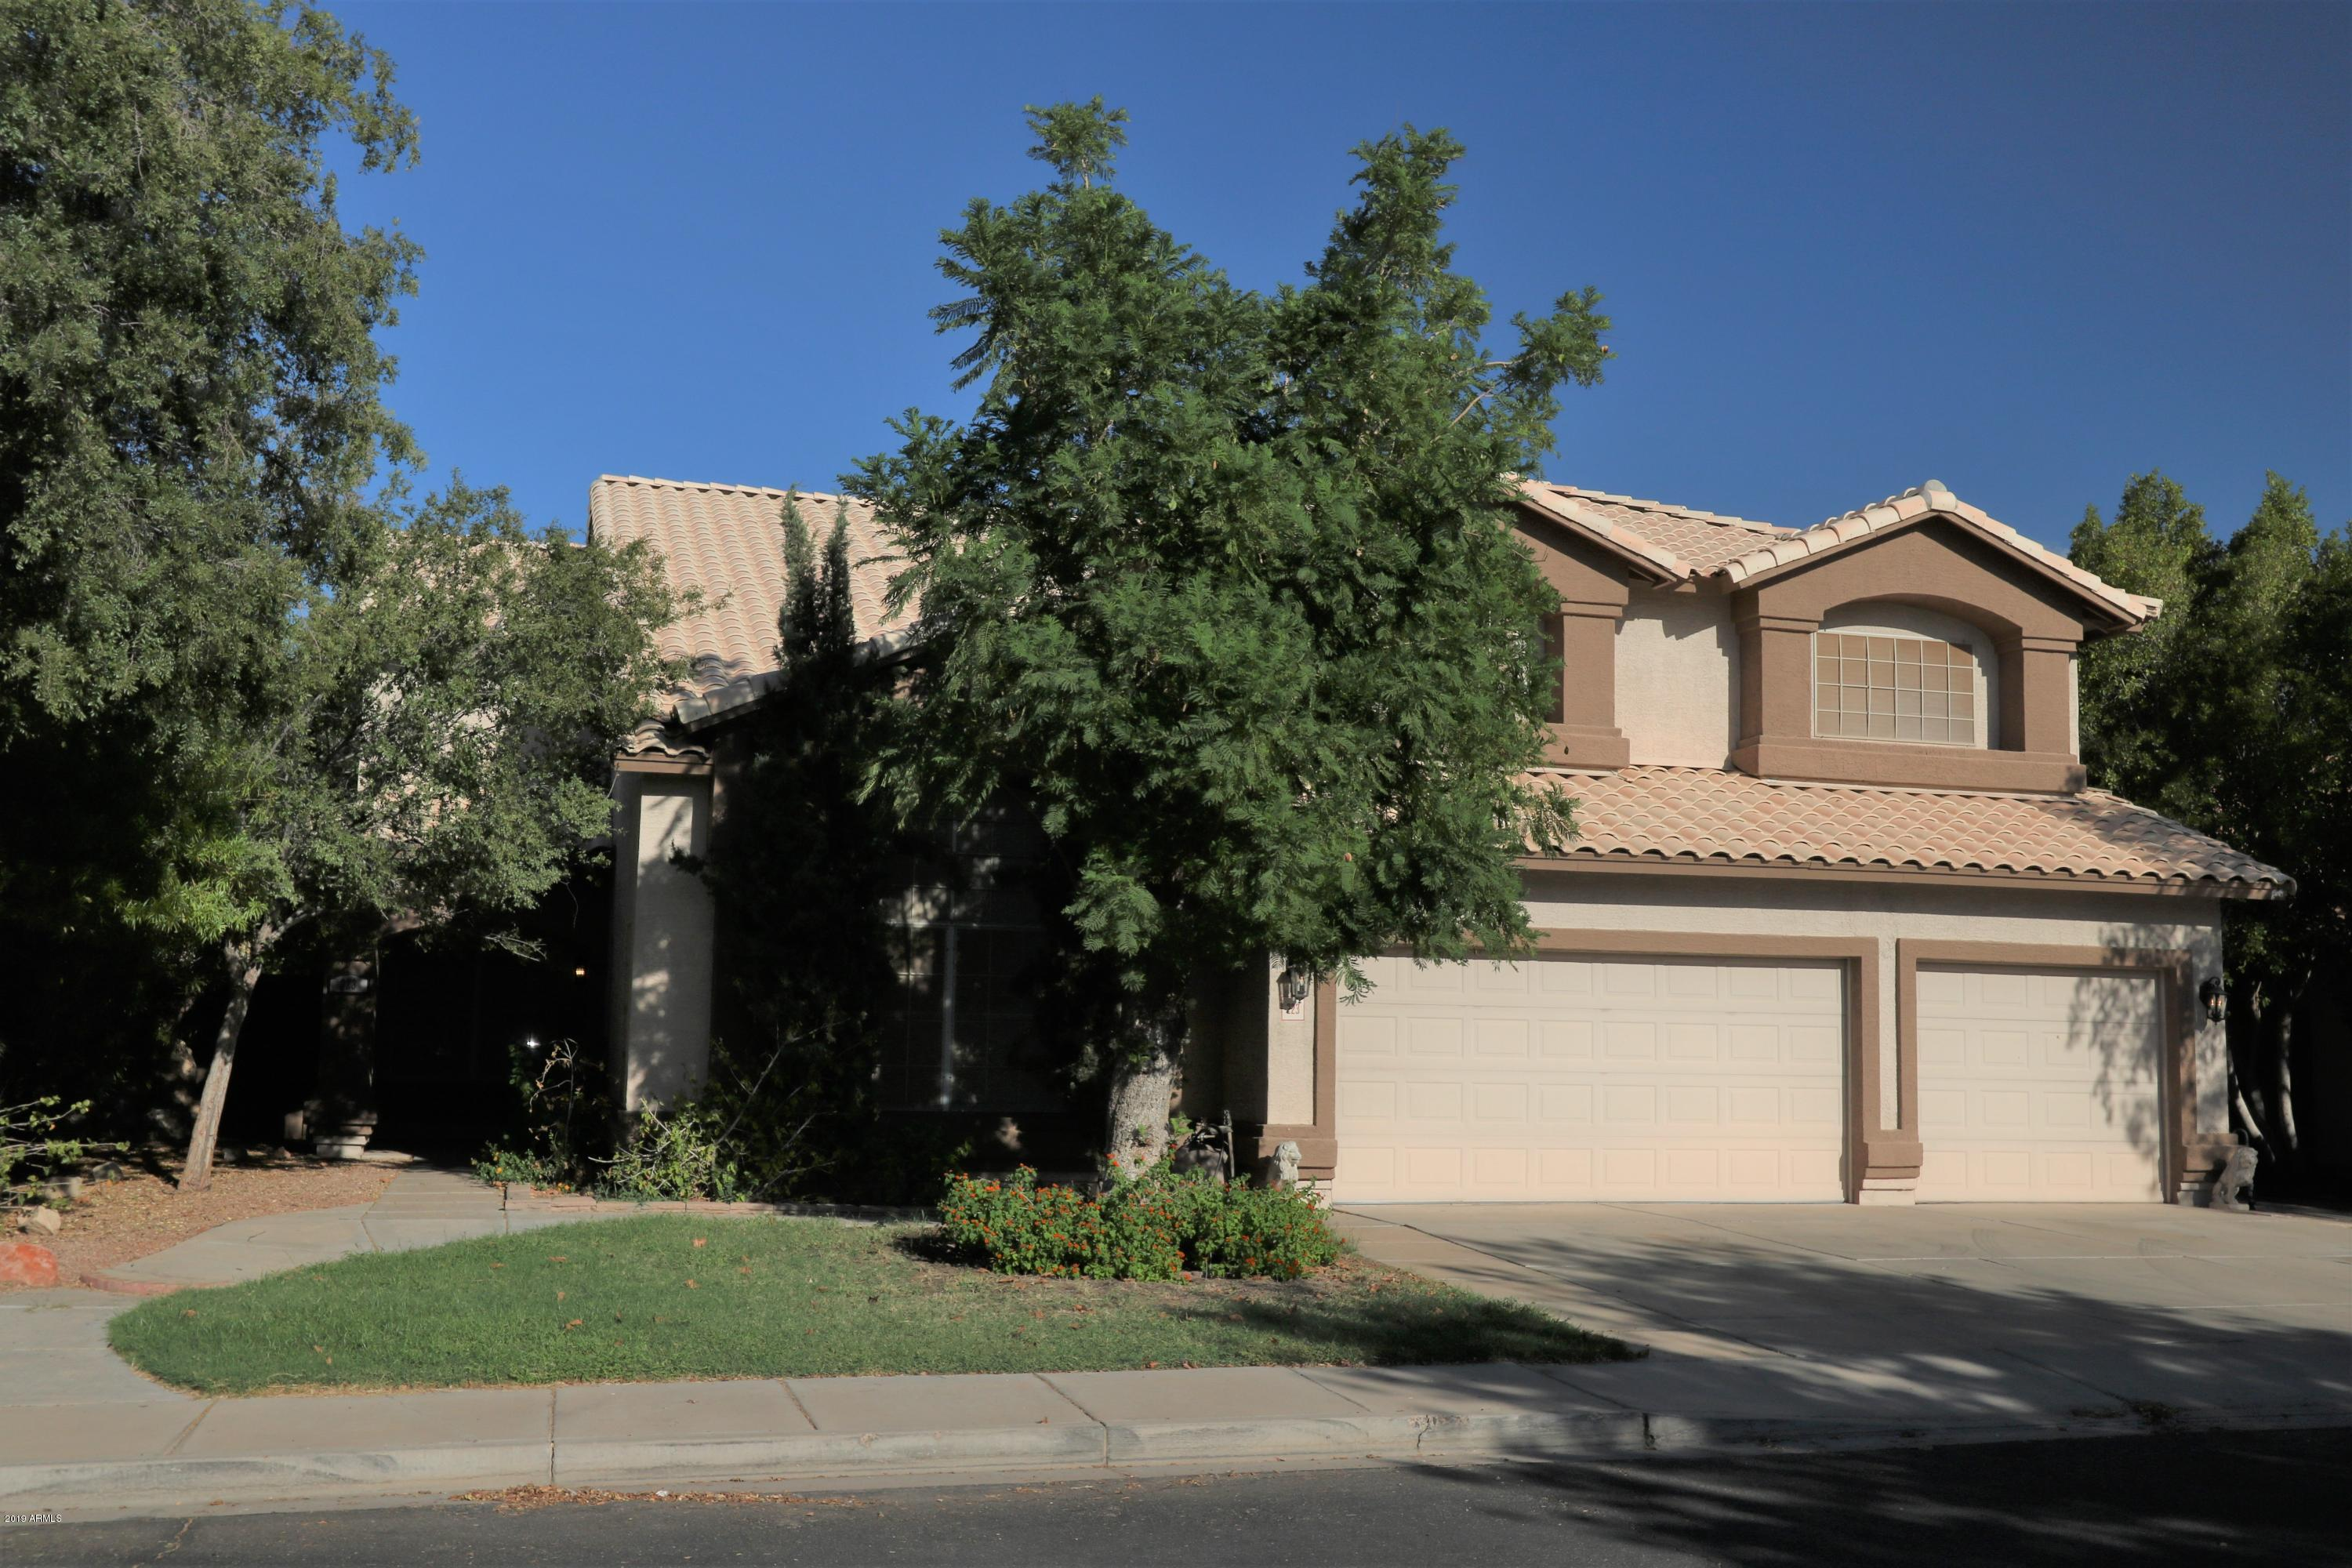 Photo of 223 S SANDSTONE Street, Gilbert, AZ 85296